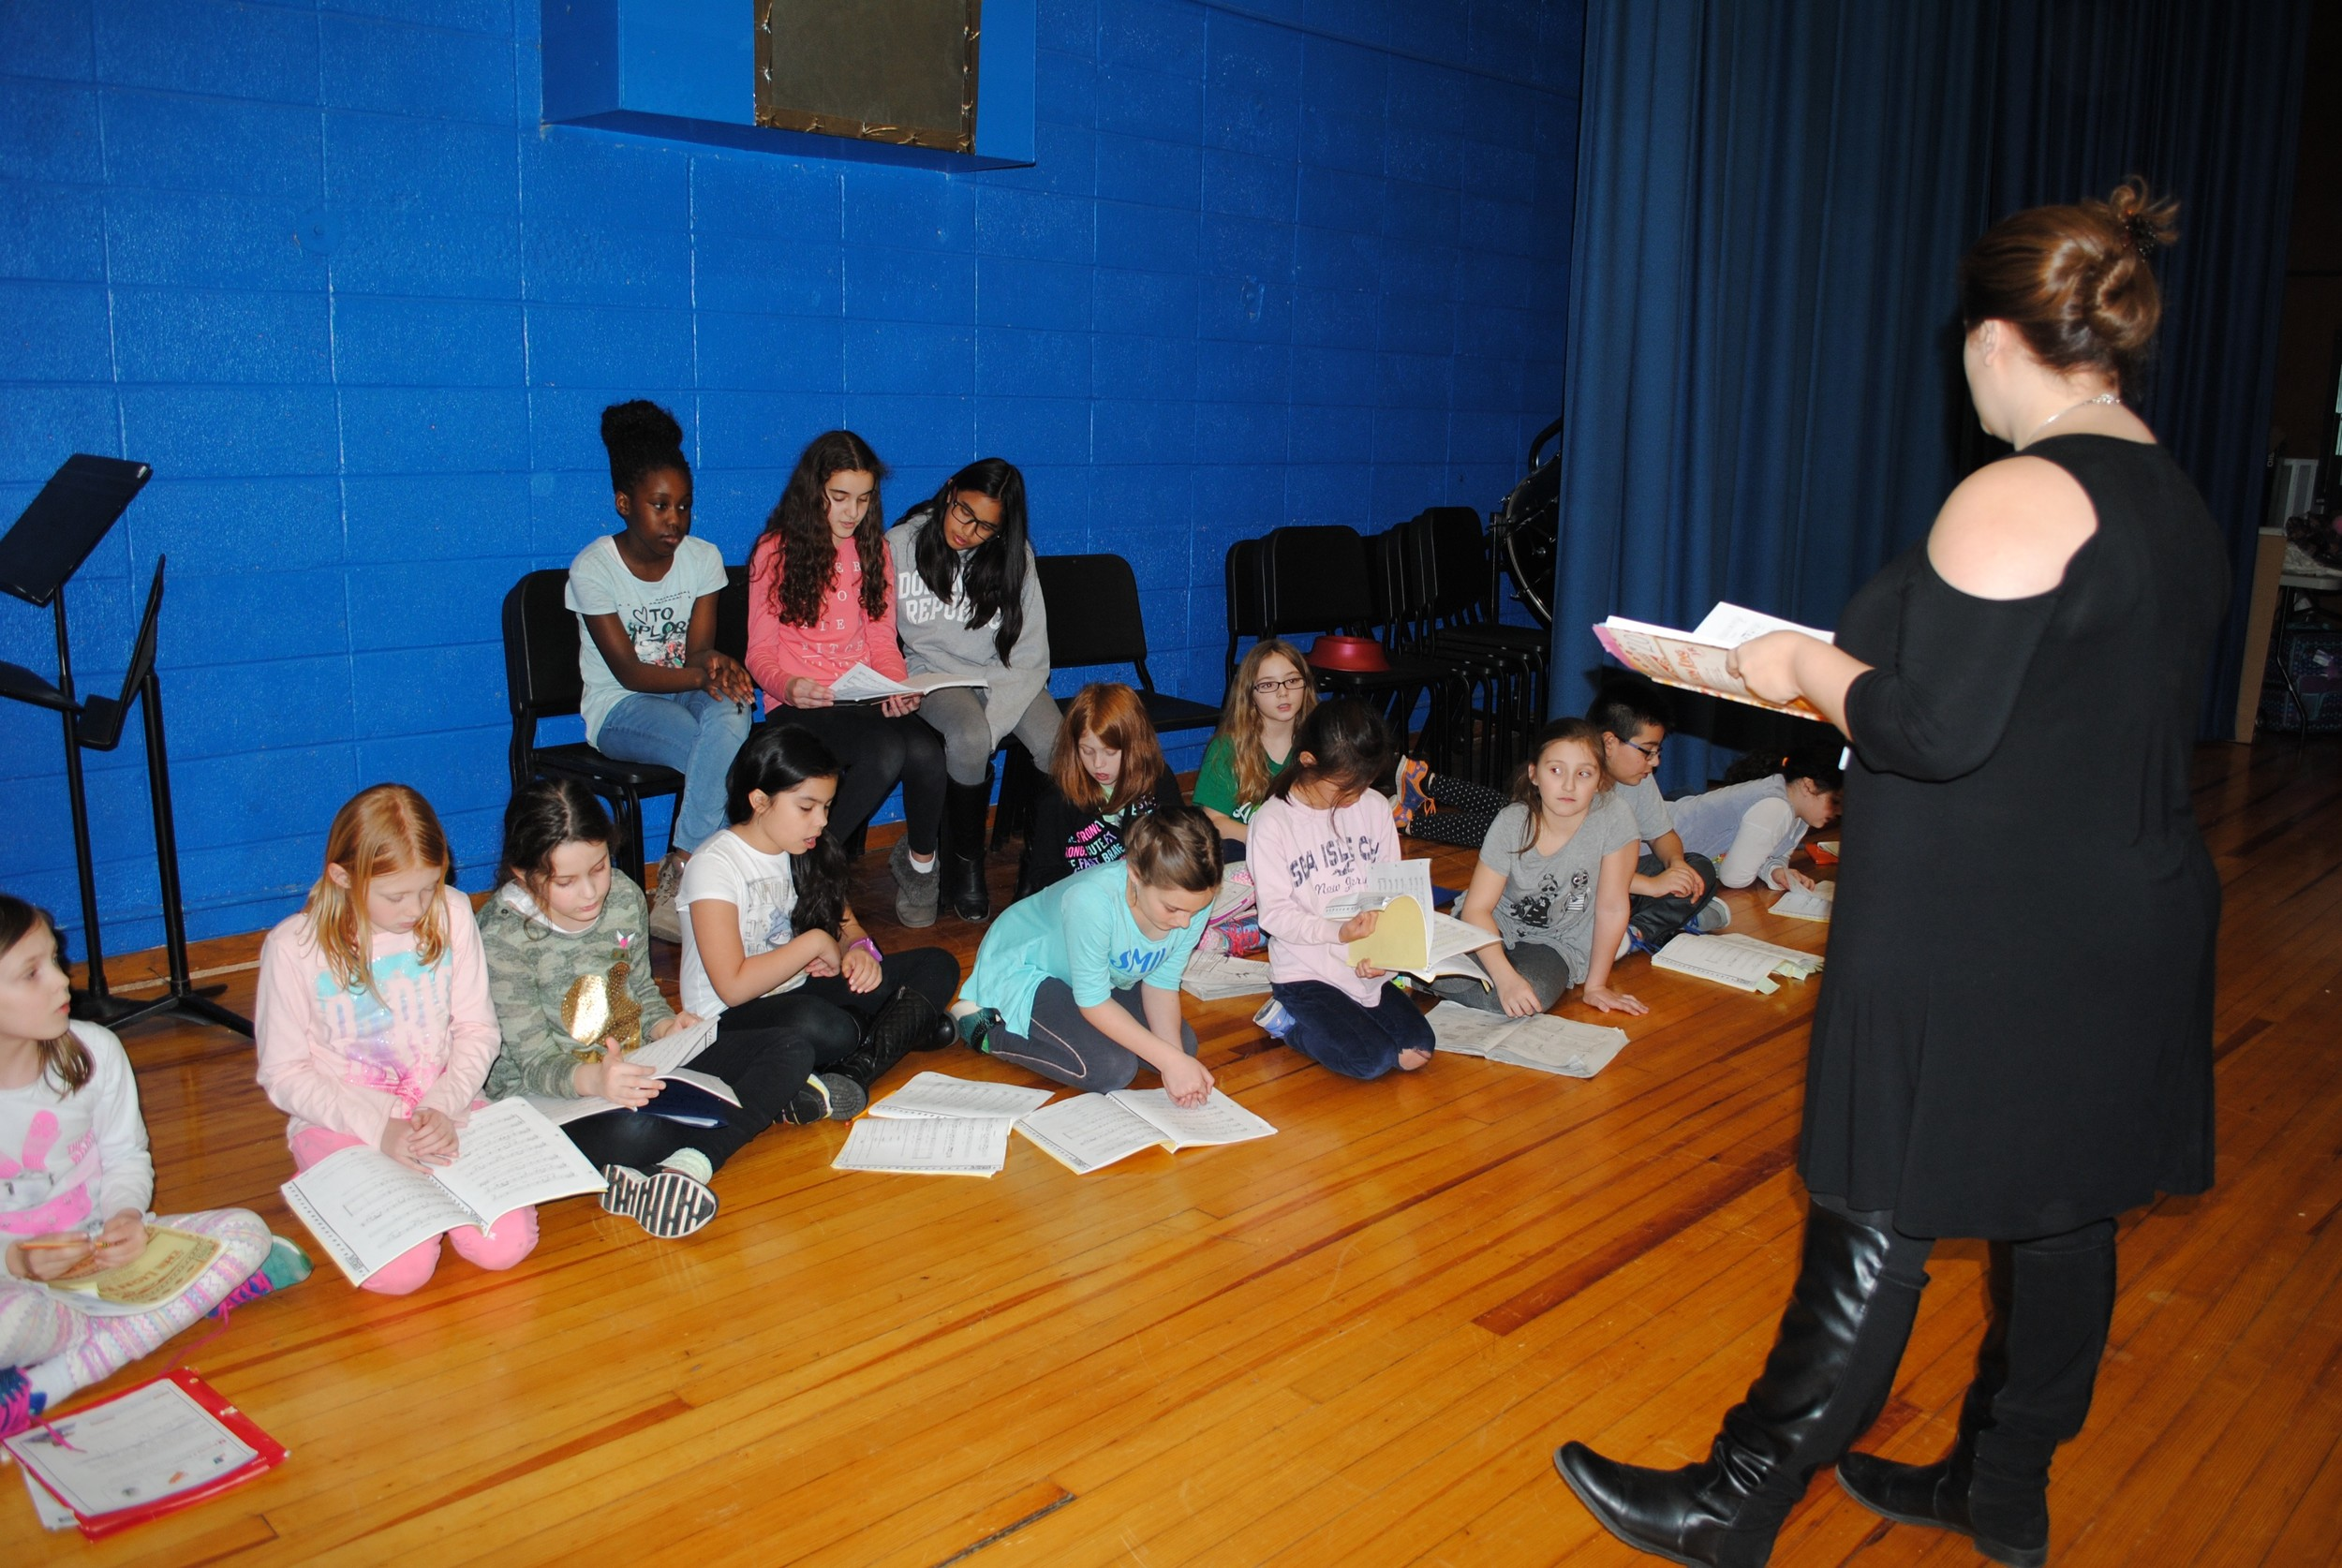 Director Teriann Chiappardi and the students practiced a song from the play during a rehearsal.